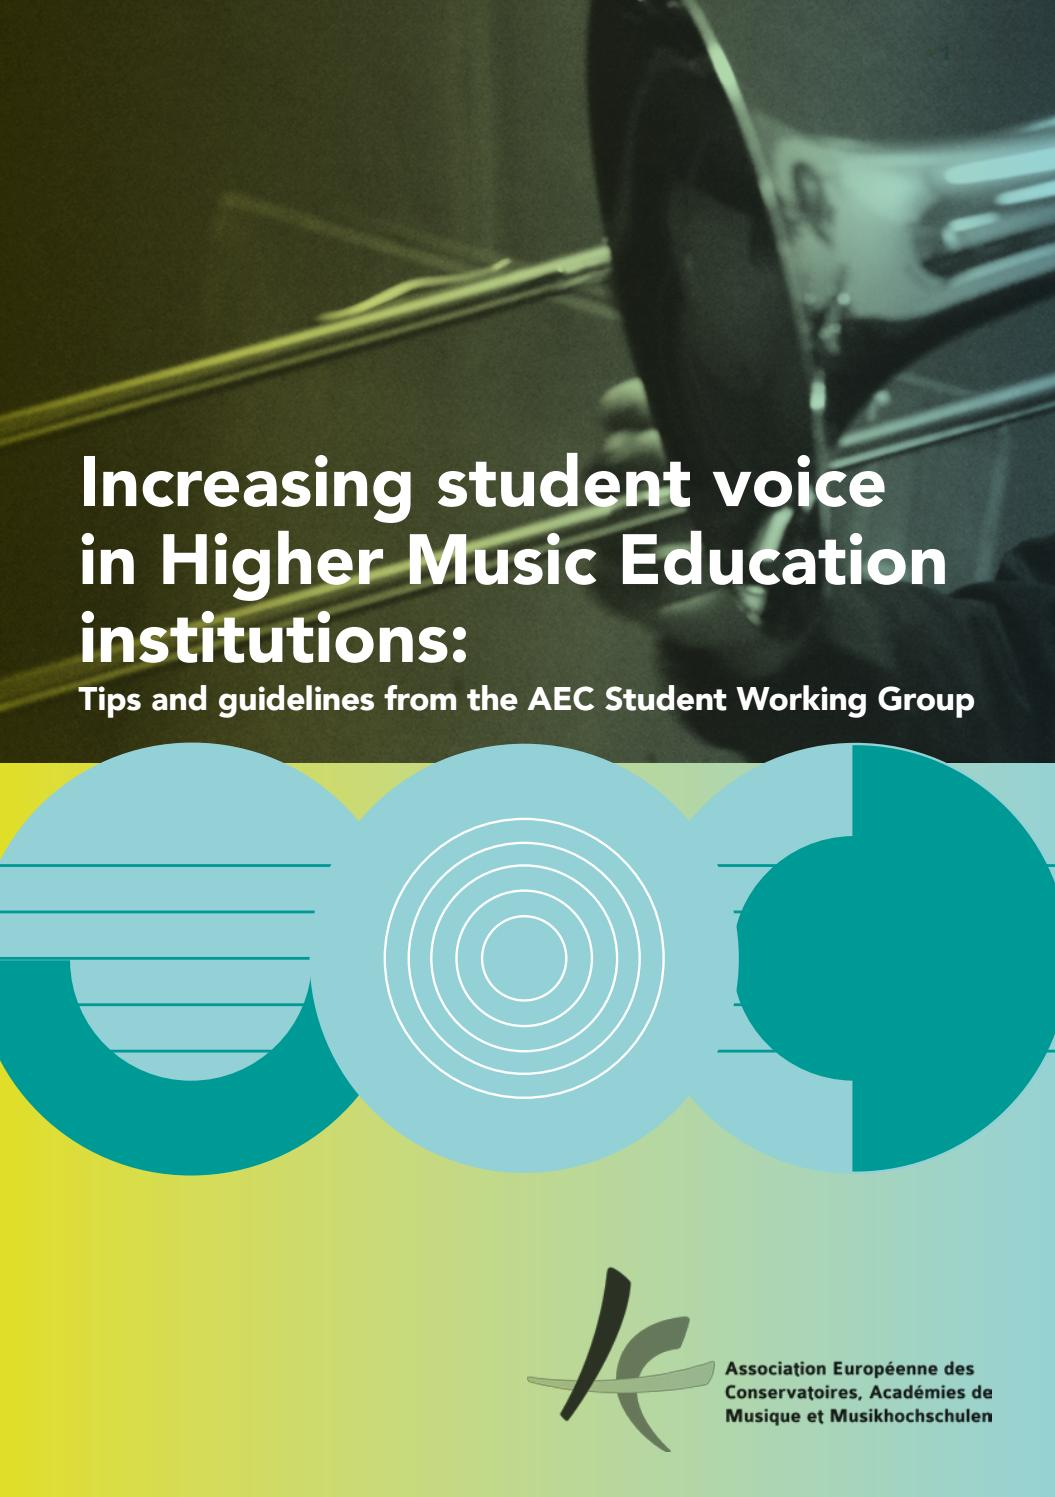 Increasing student voice in HME institutions  Tips and